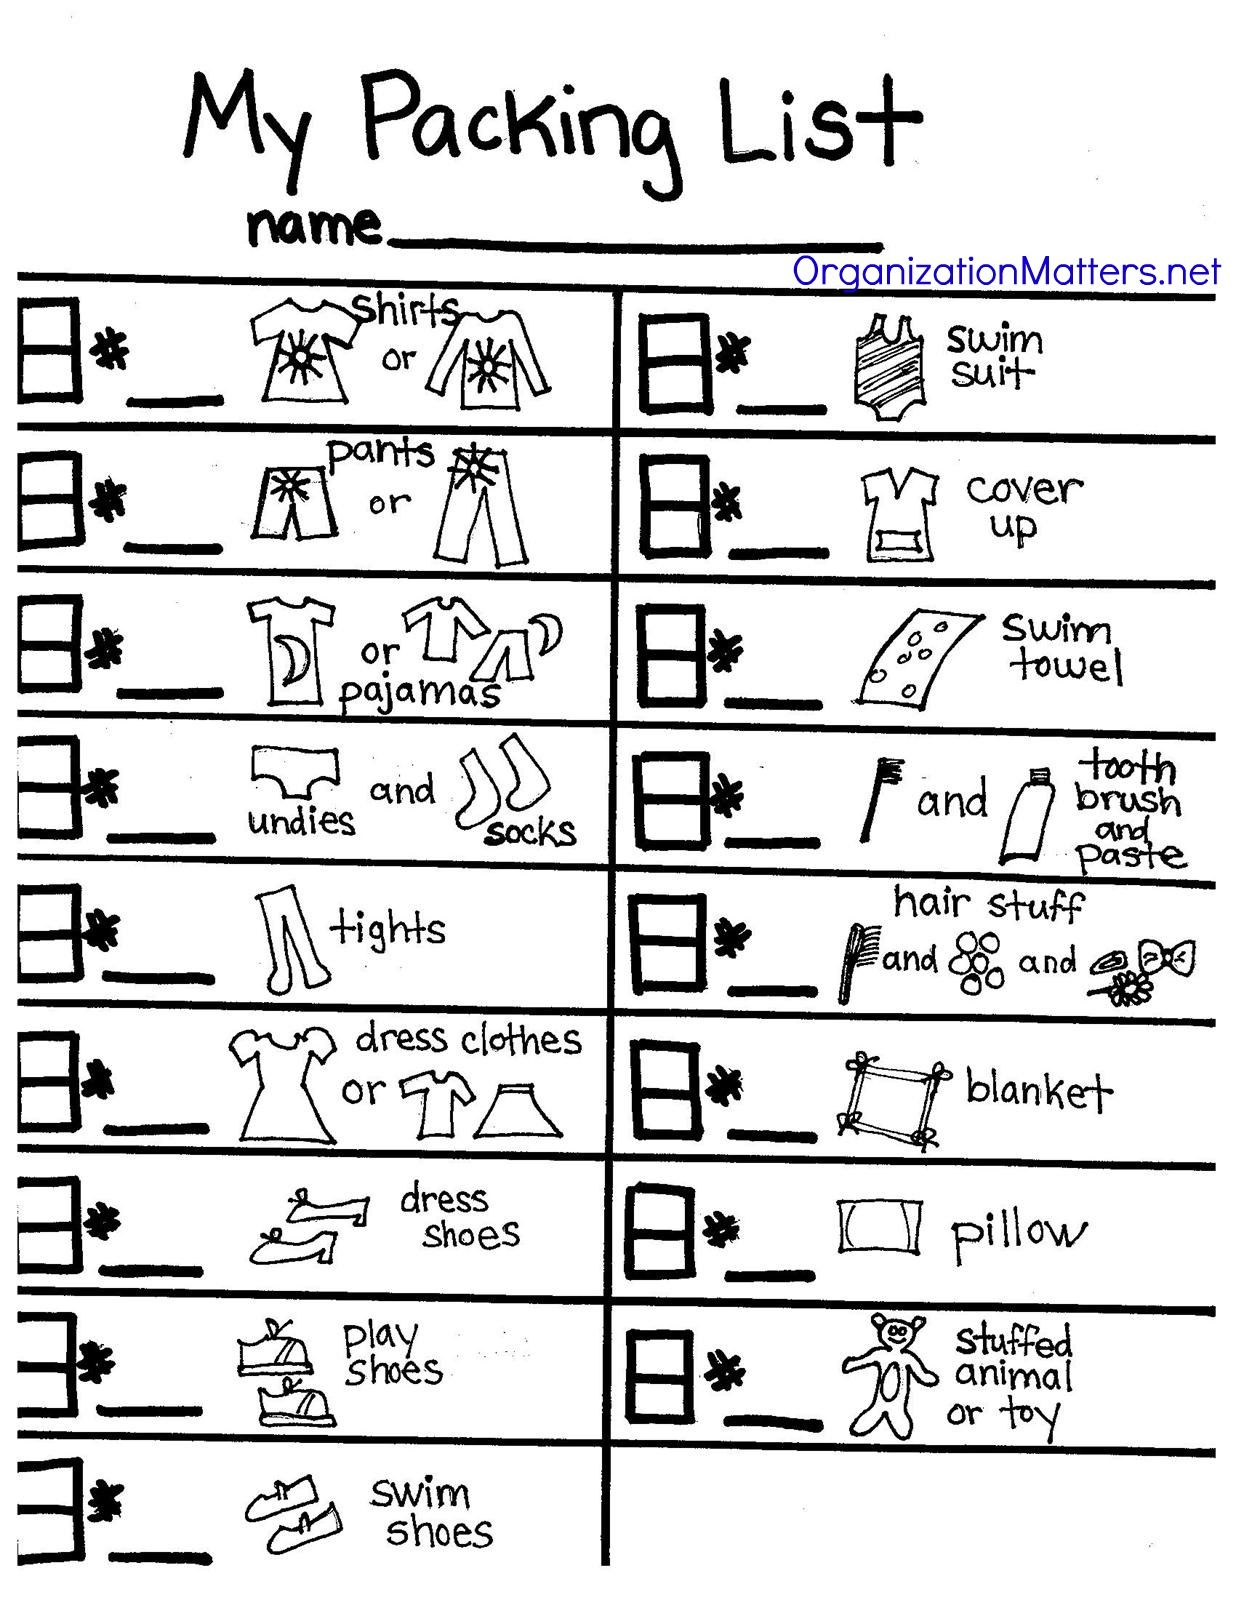 A Packing List Just For Kids